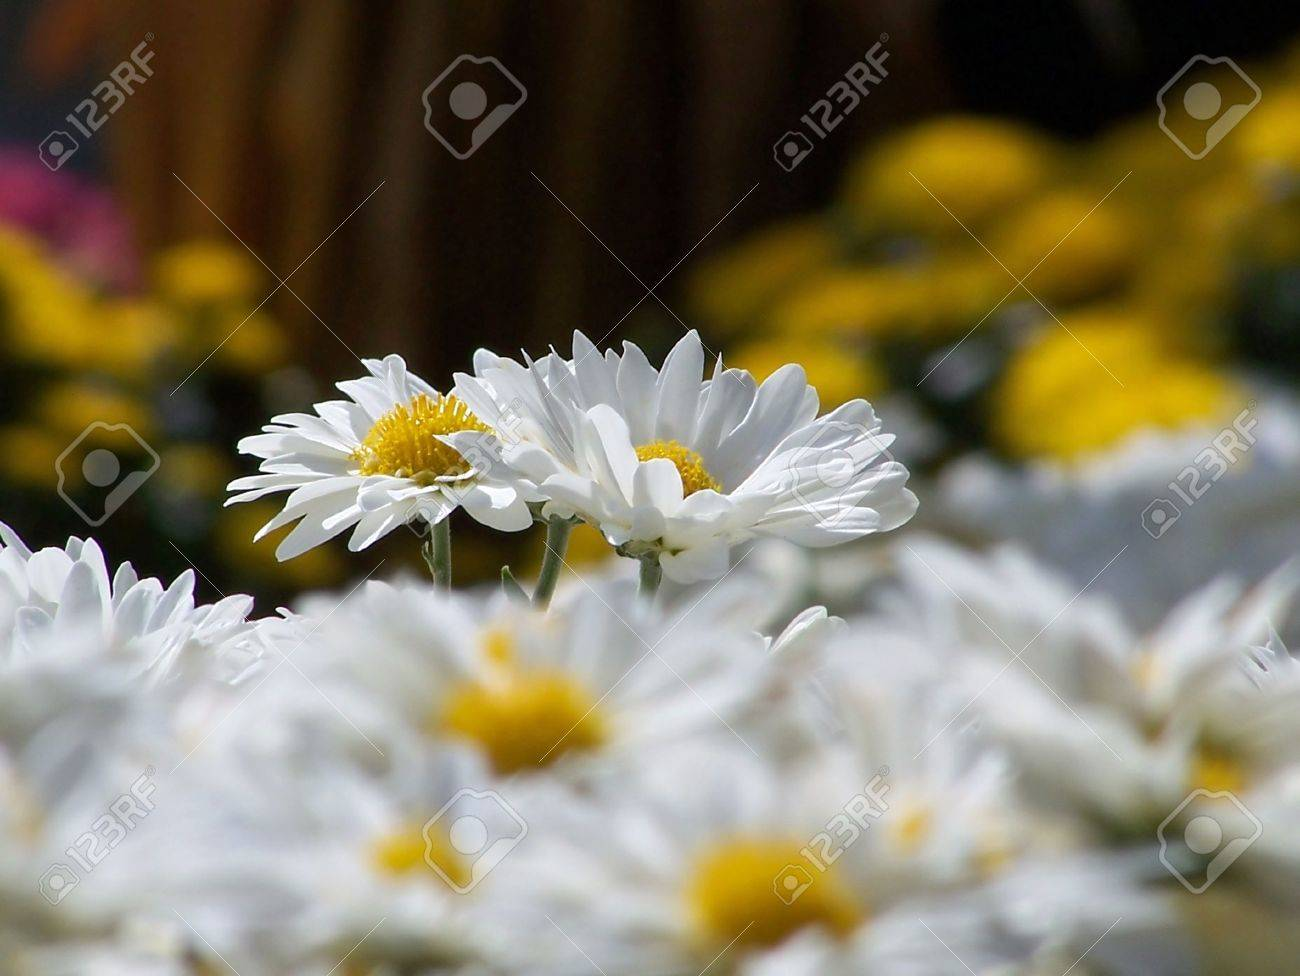 White chrysthanthemums with fall flowers in background stock photo stock photo white chrysthanthemums with fall flowers in background mightylinksfo